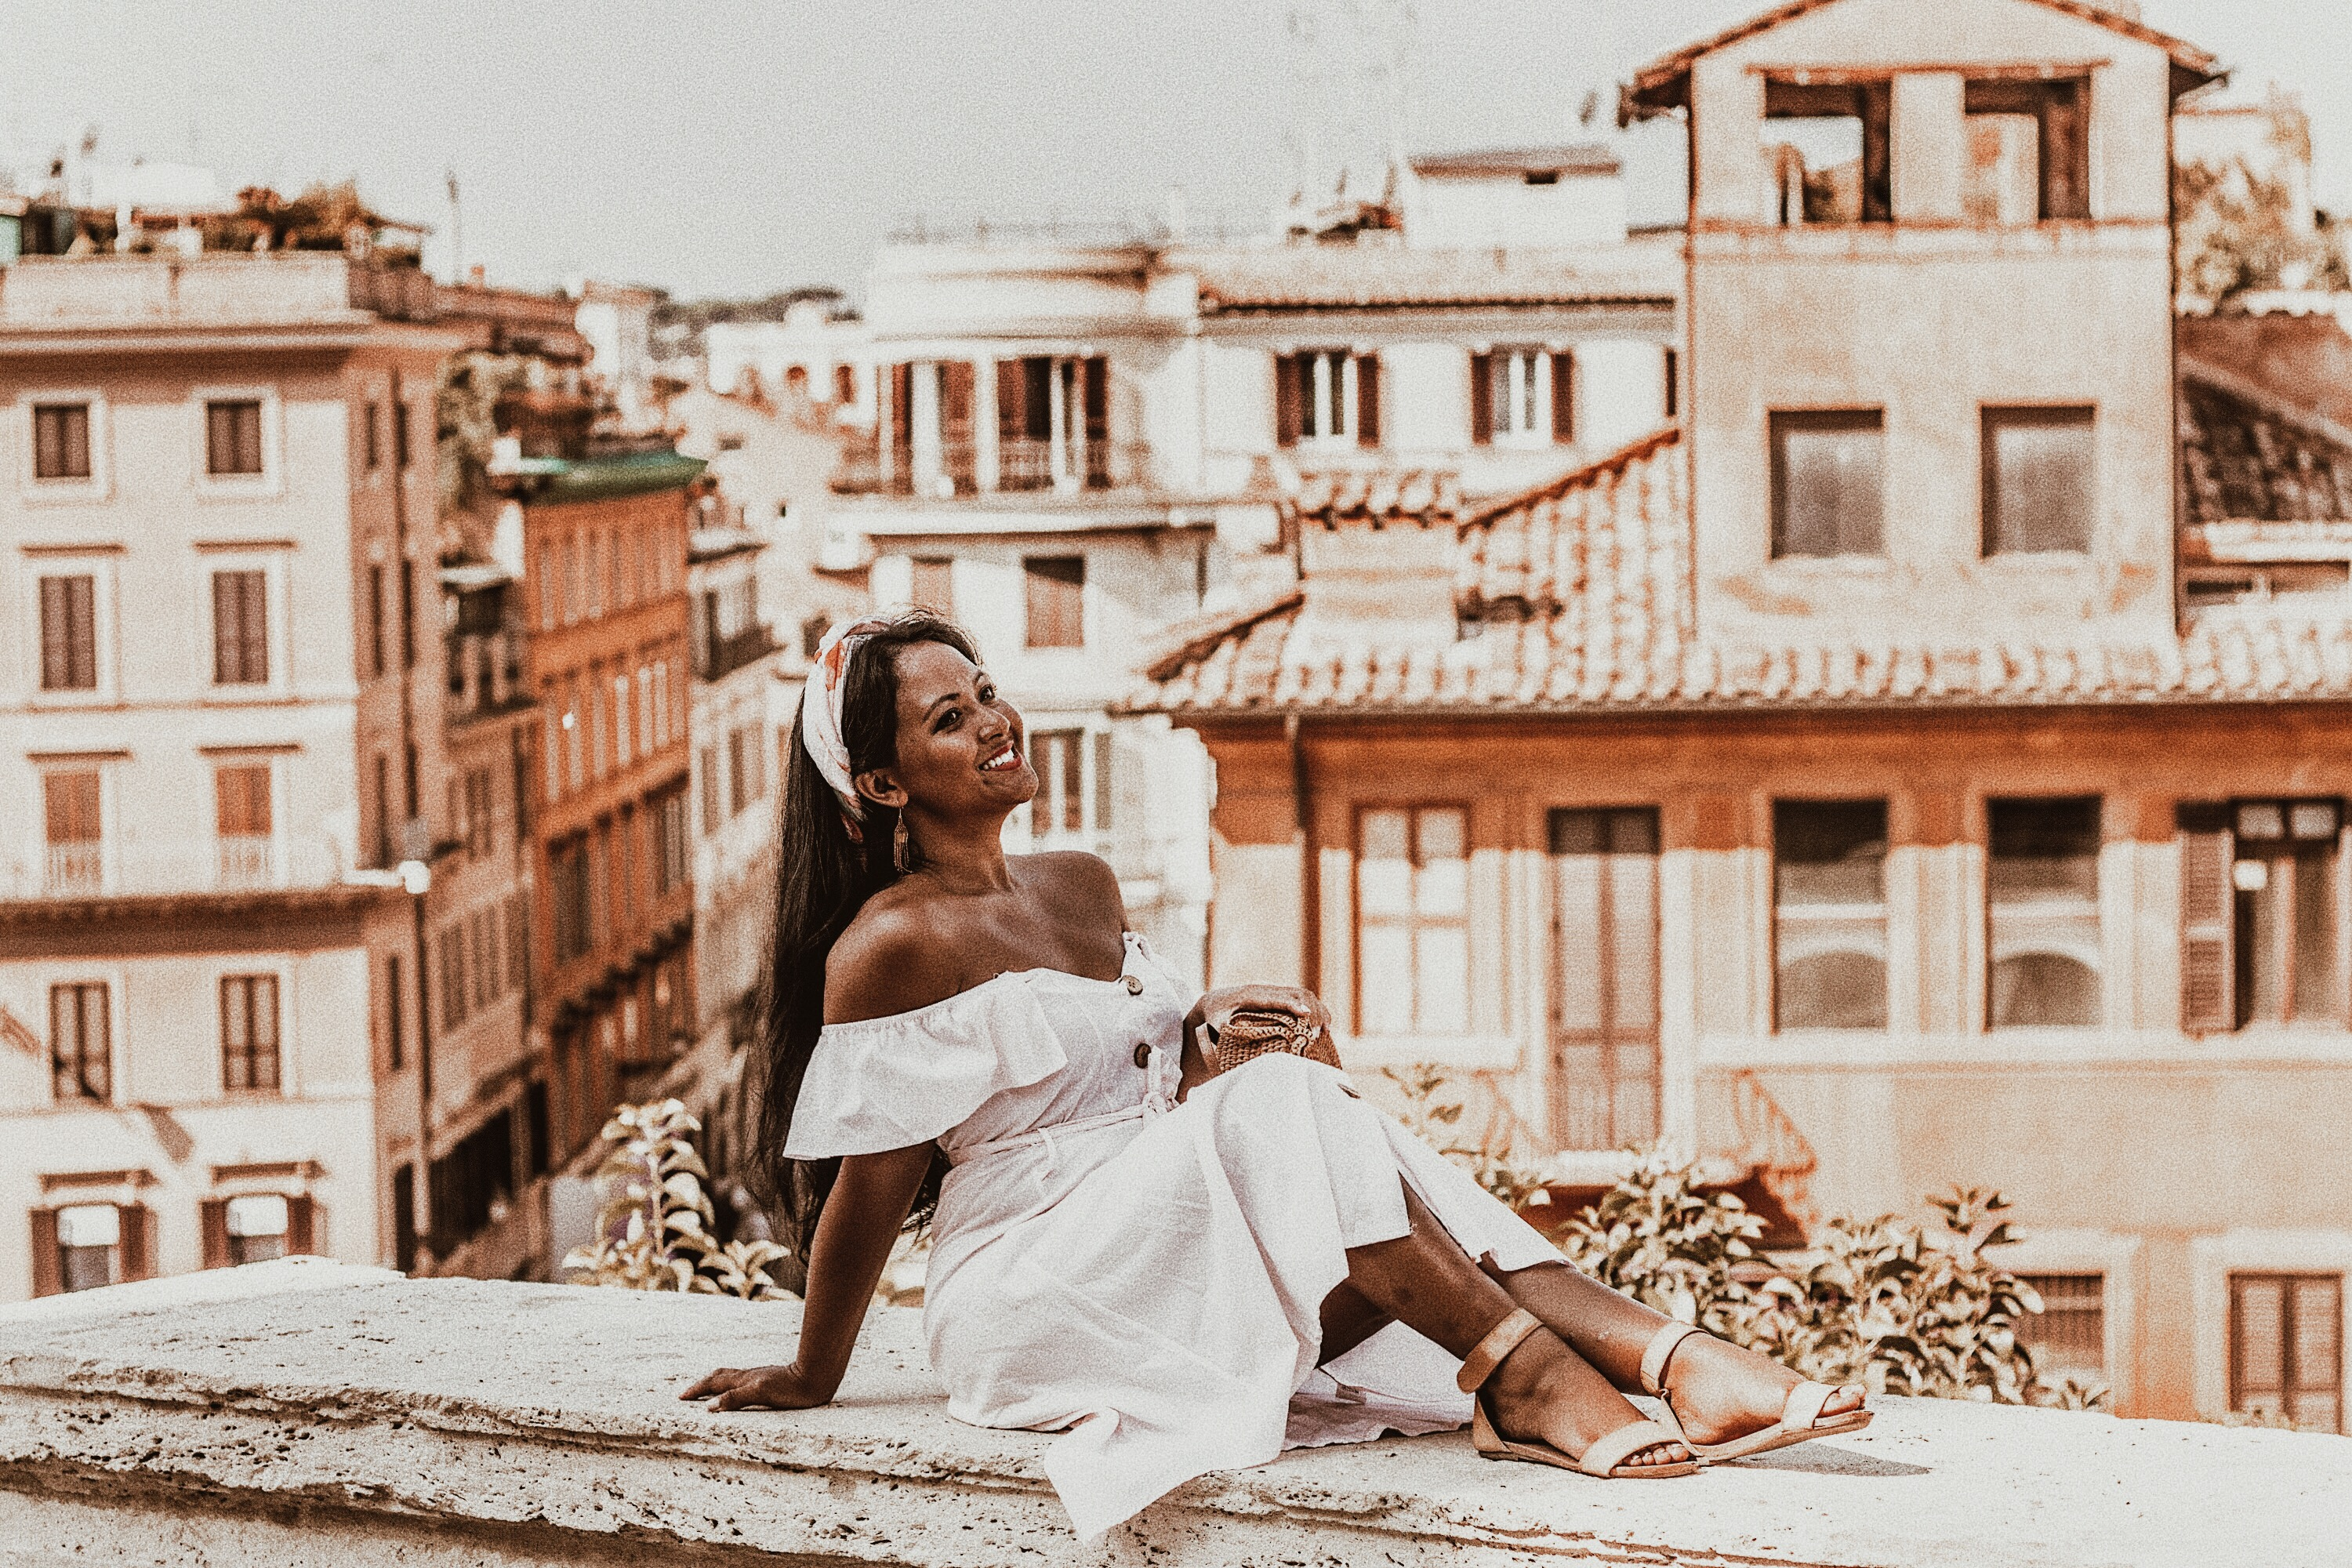 Marjolyn Lago Marj How-To-Wear-Off-Shoulder-Dress-Light-Blush-Pink-Button-Down-Dress-Rattan-Straw-Basket-Bag-Flat-Sandal-Headwrap-Paris-Chic-Style-Fashion-Lookbook-Street-Style-ootd Outfit Of The Day-Rome-Italy-3